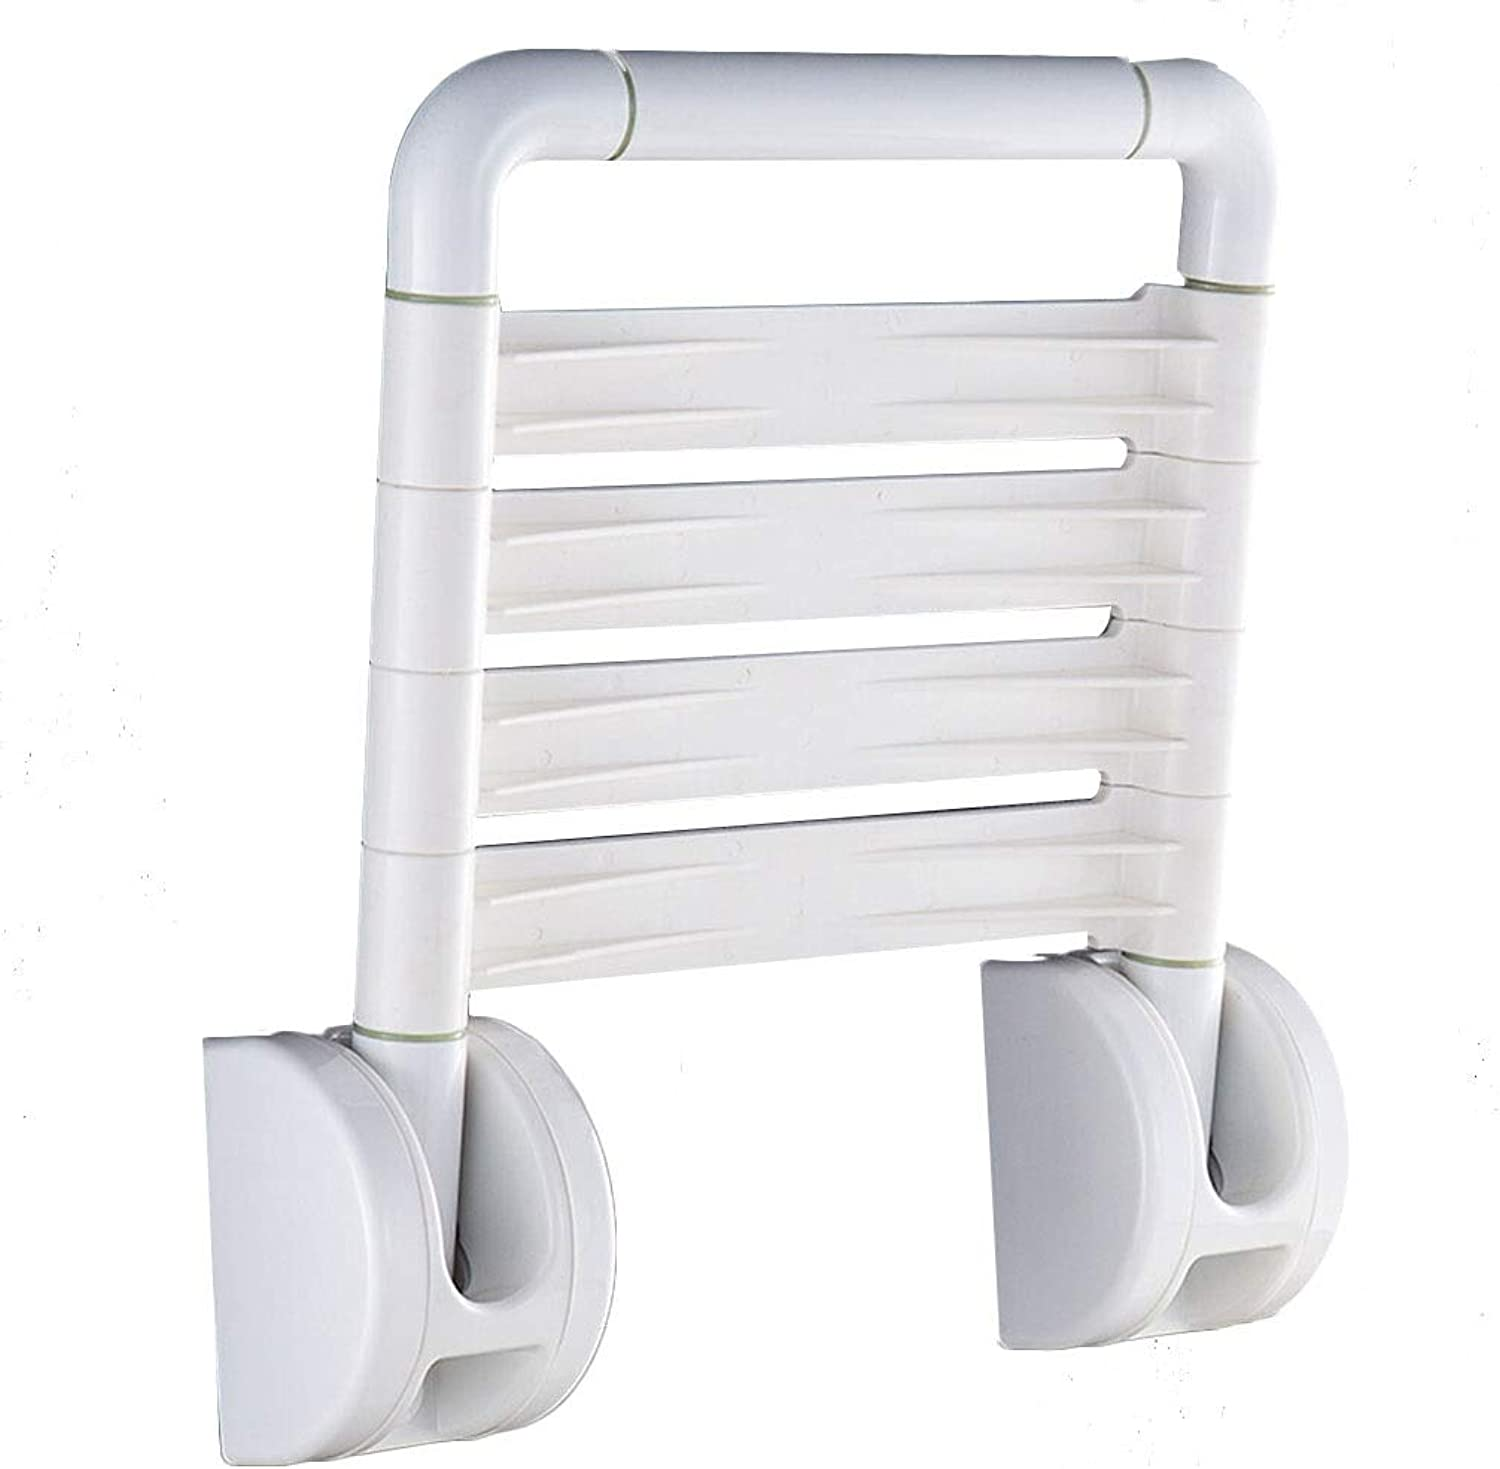 AGL-Bathroom Stools Wall-Mounted Bathroom Stools Plastic Fold Non-Slip Save Space Old Man Pregnant Woman Change shoes Bench, White (color   White, Size   35X40.5CM)